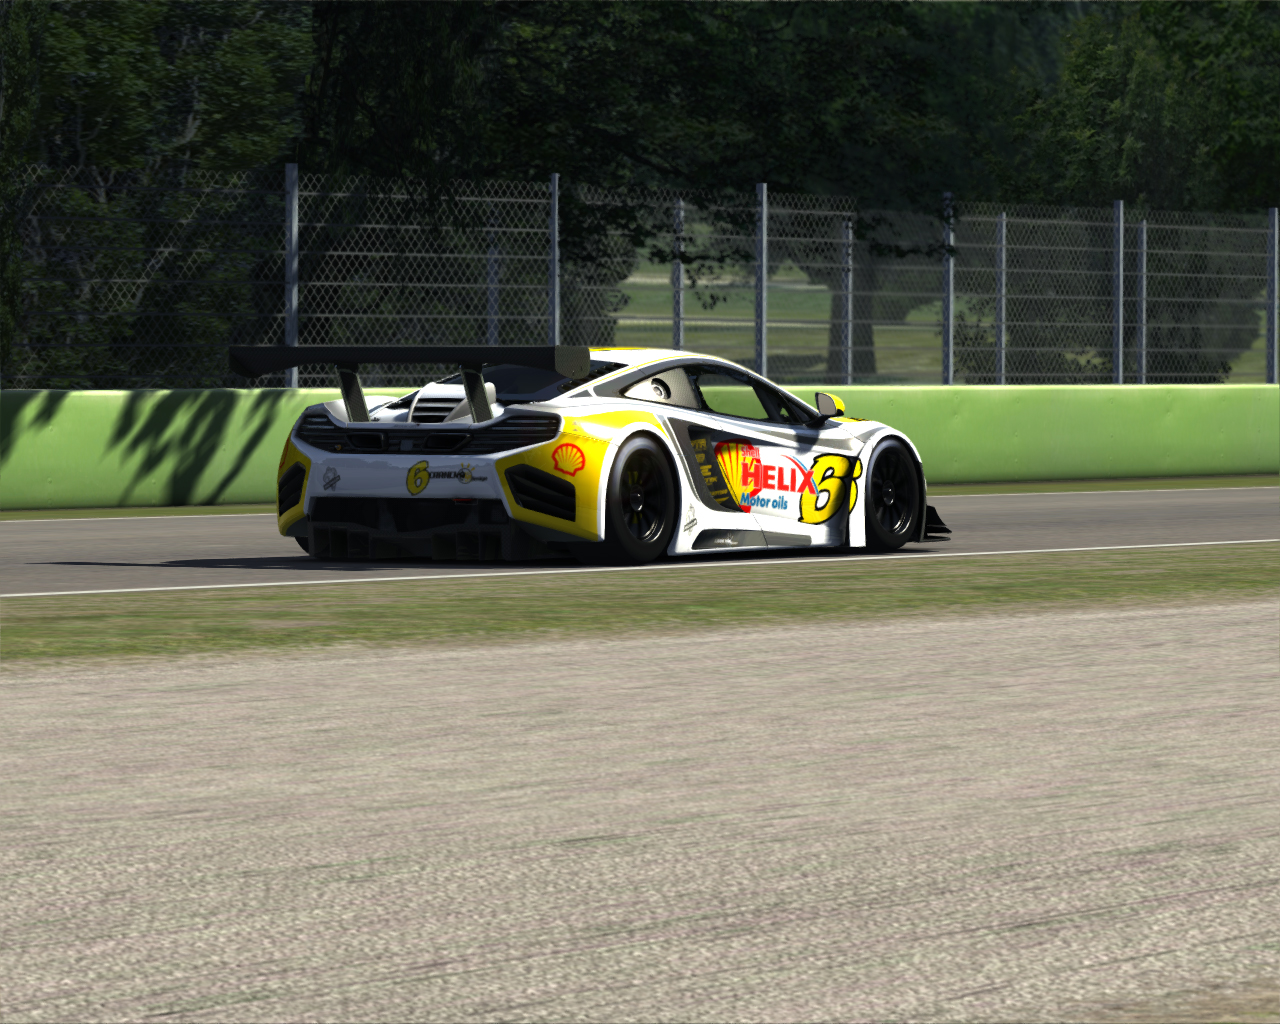 Screenshot_mclaren_mp412c_gt3_imola_5-7-2014-10-28-48.jpg